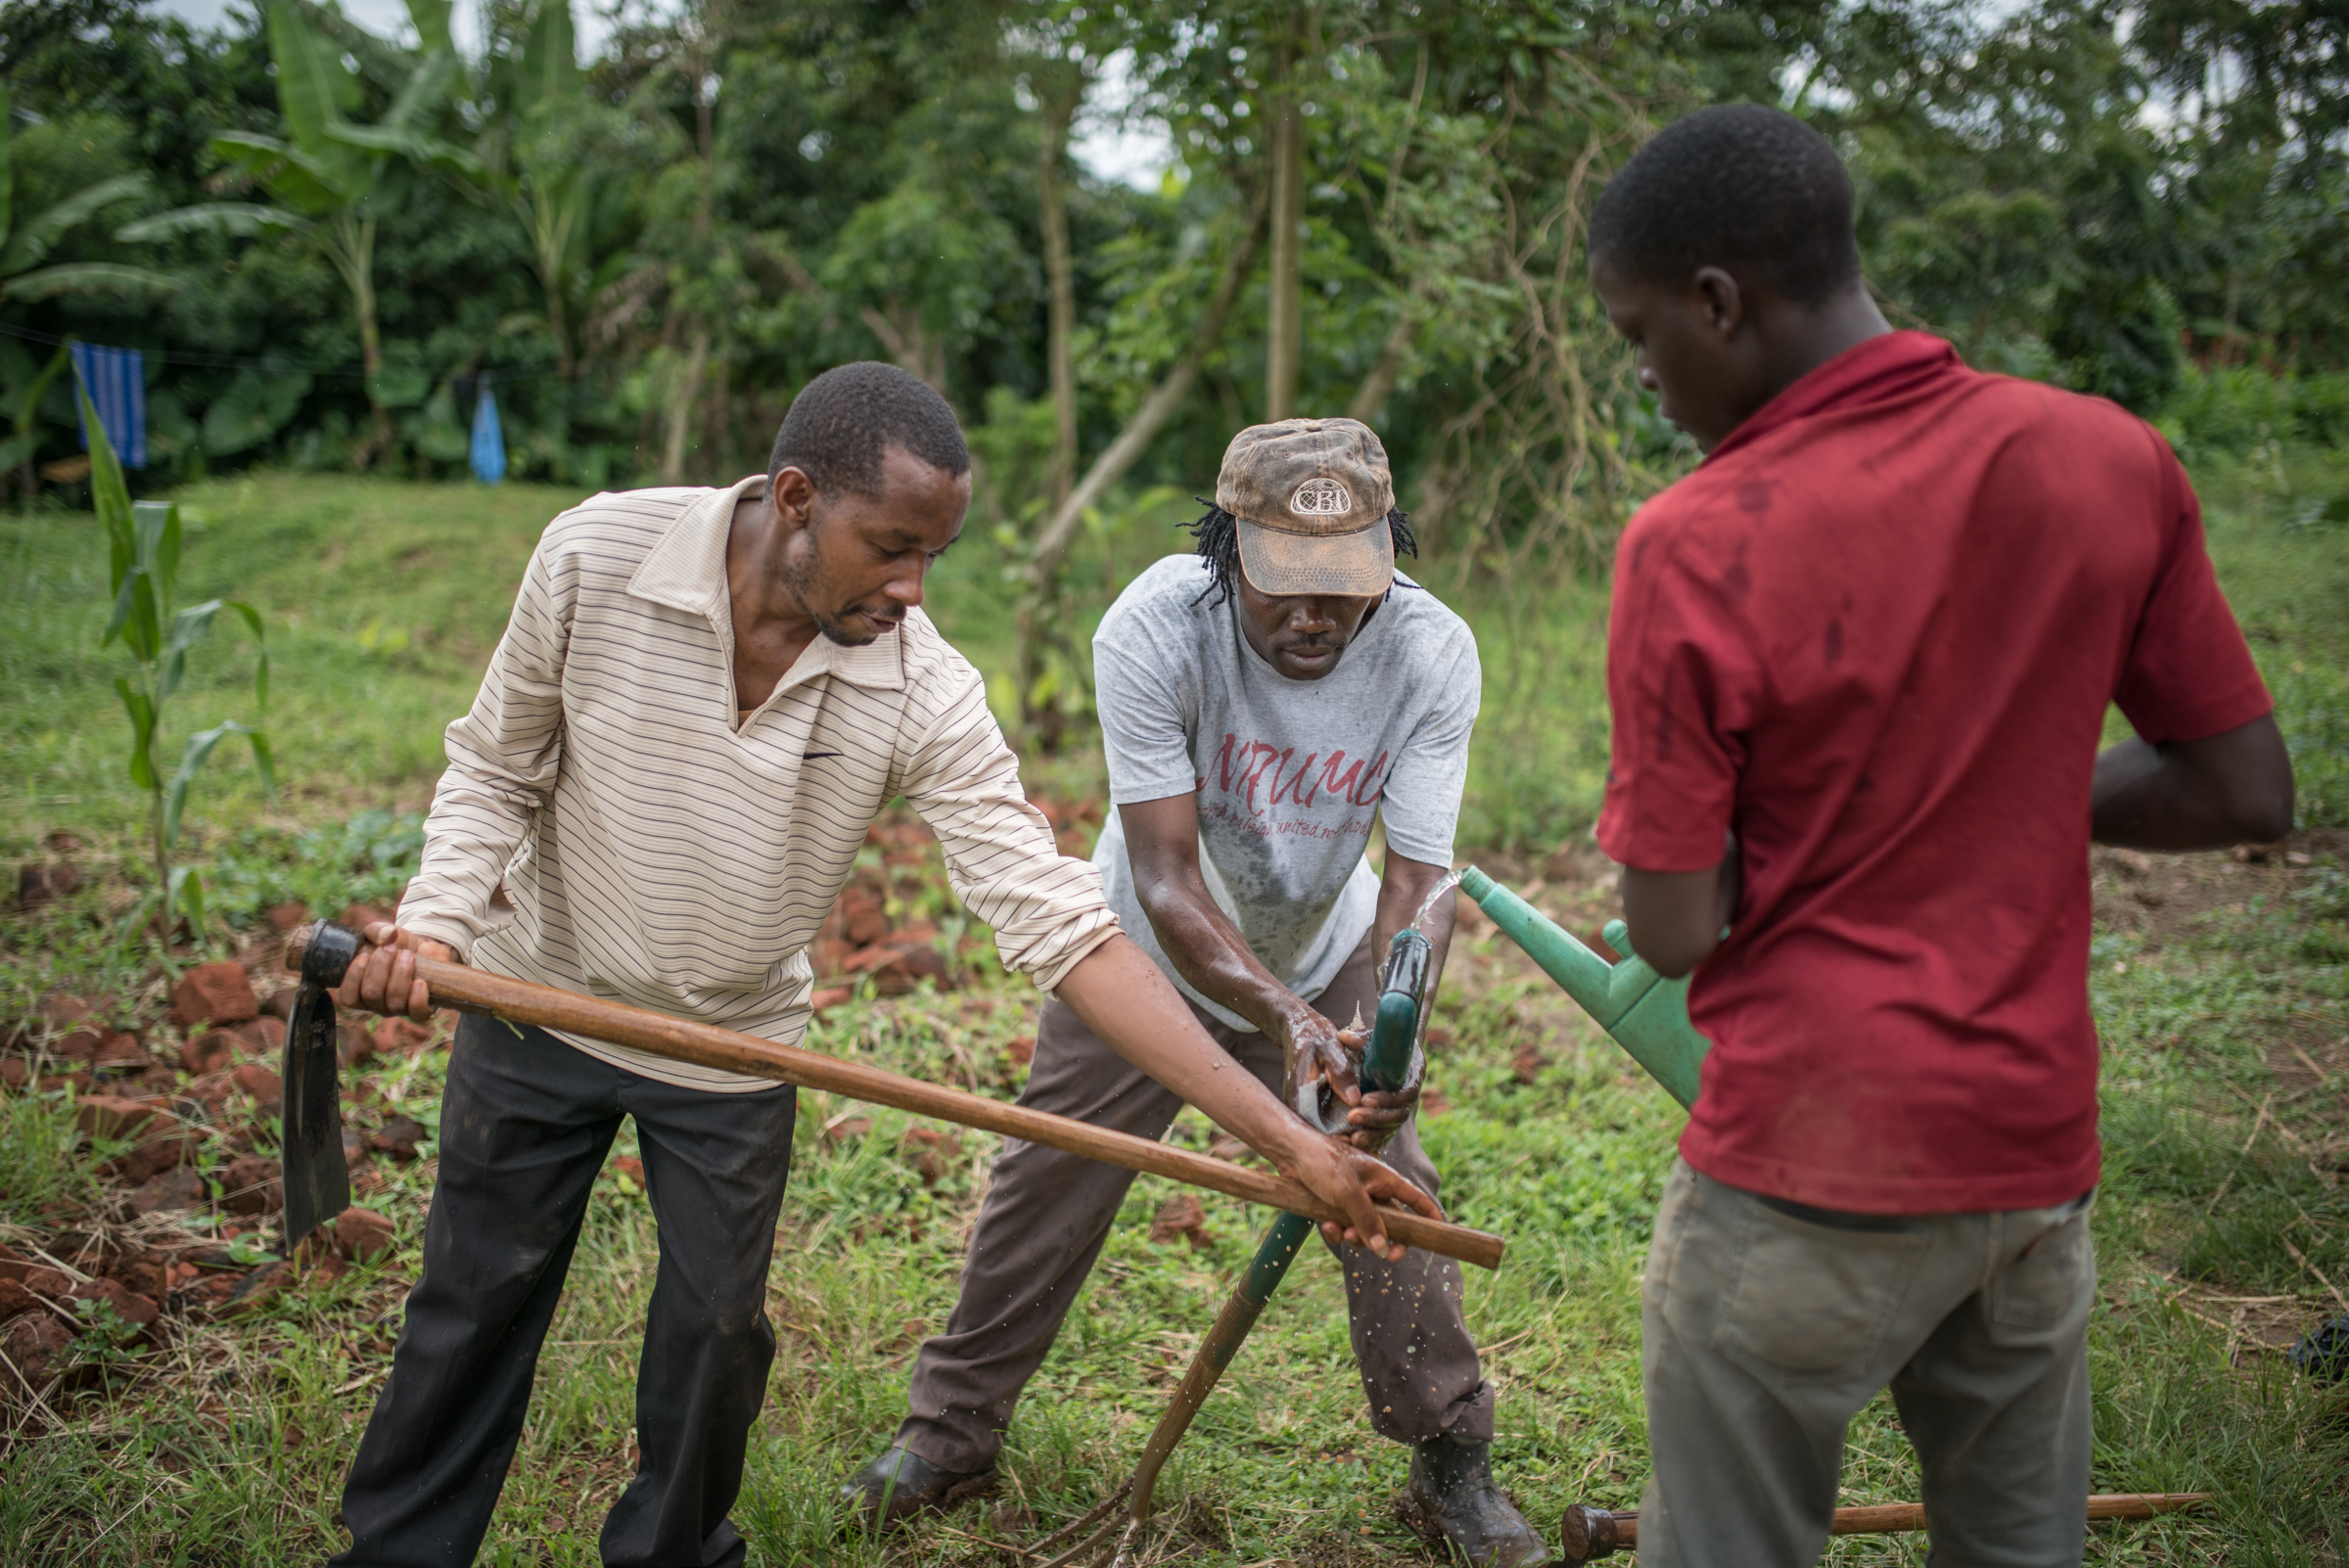 Reuben Ndwiga (center) is our Director of Agriculture in East Africa. After transforming his own land in Kenya, and instructing dozens of neighbors how to do the same, he is now moving to Uganda to head up the food production efforts at our hub. We are so thankful for him!